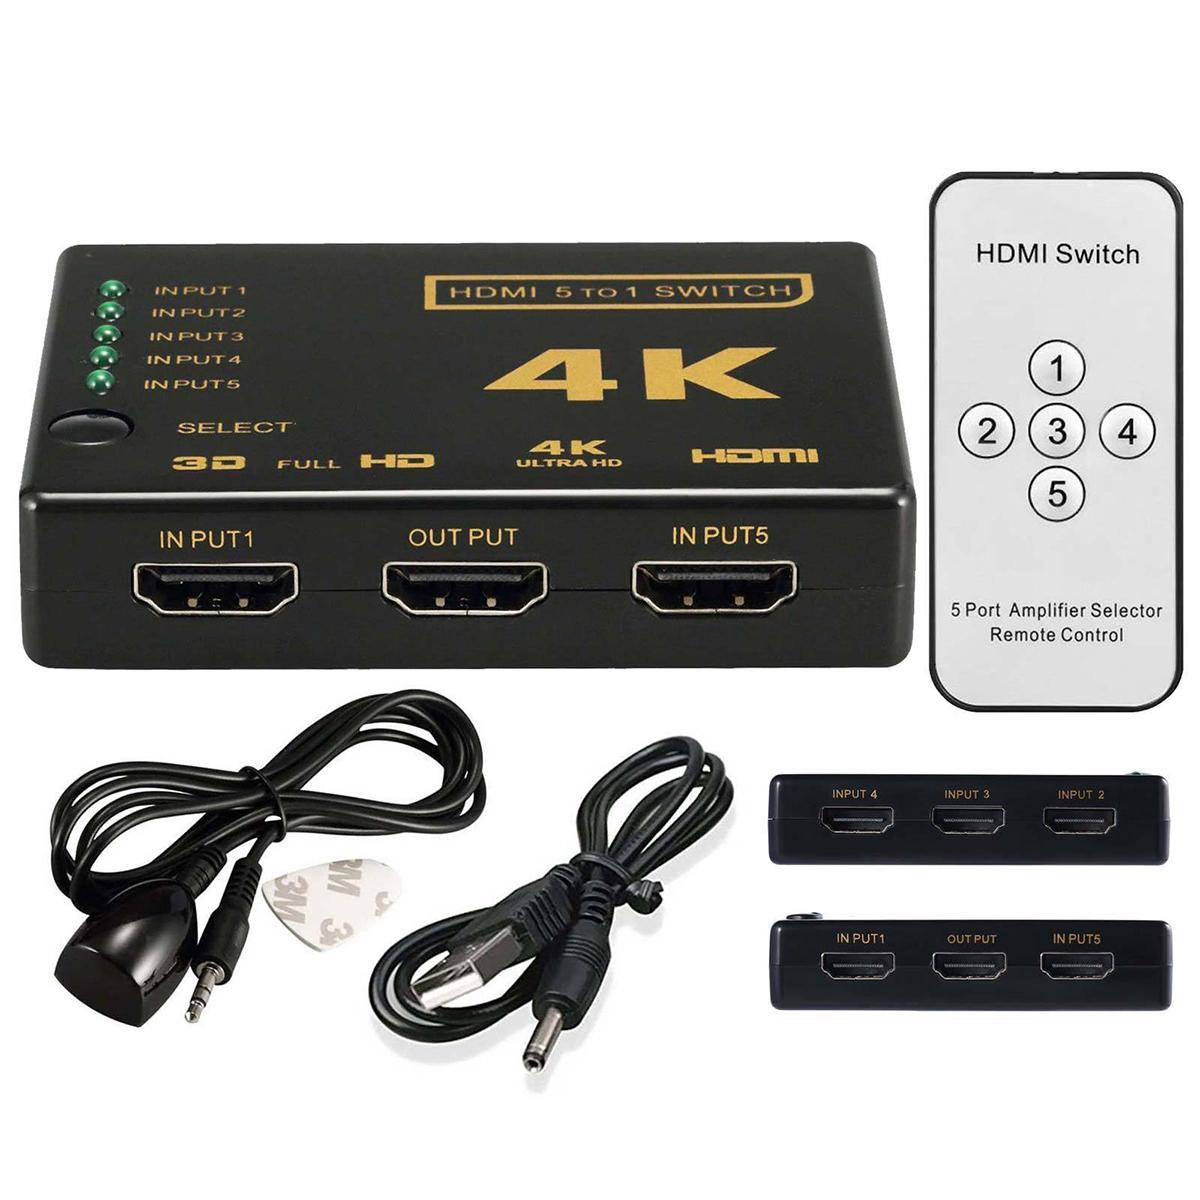 HDMI Splitter Switch Box Ultra HD 5 Port 4K 3D 1080P IR